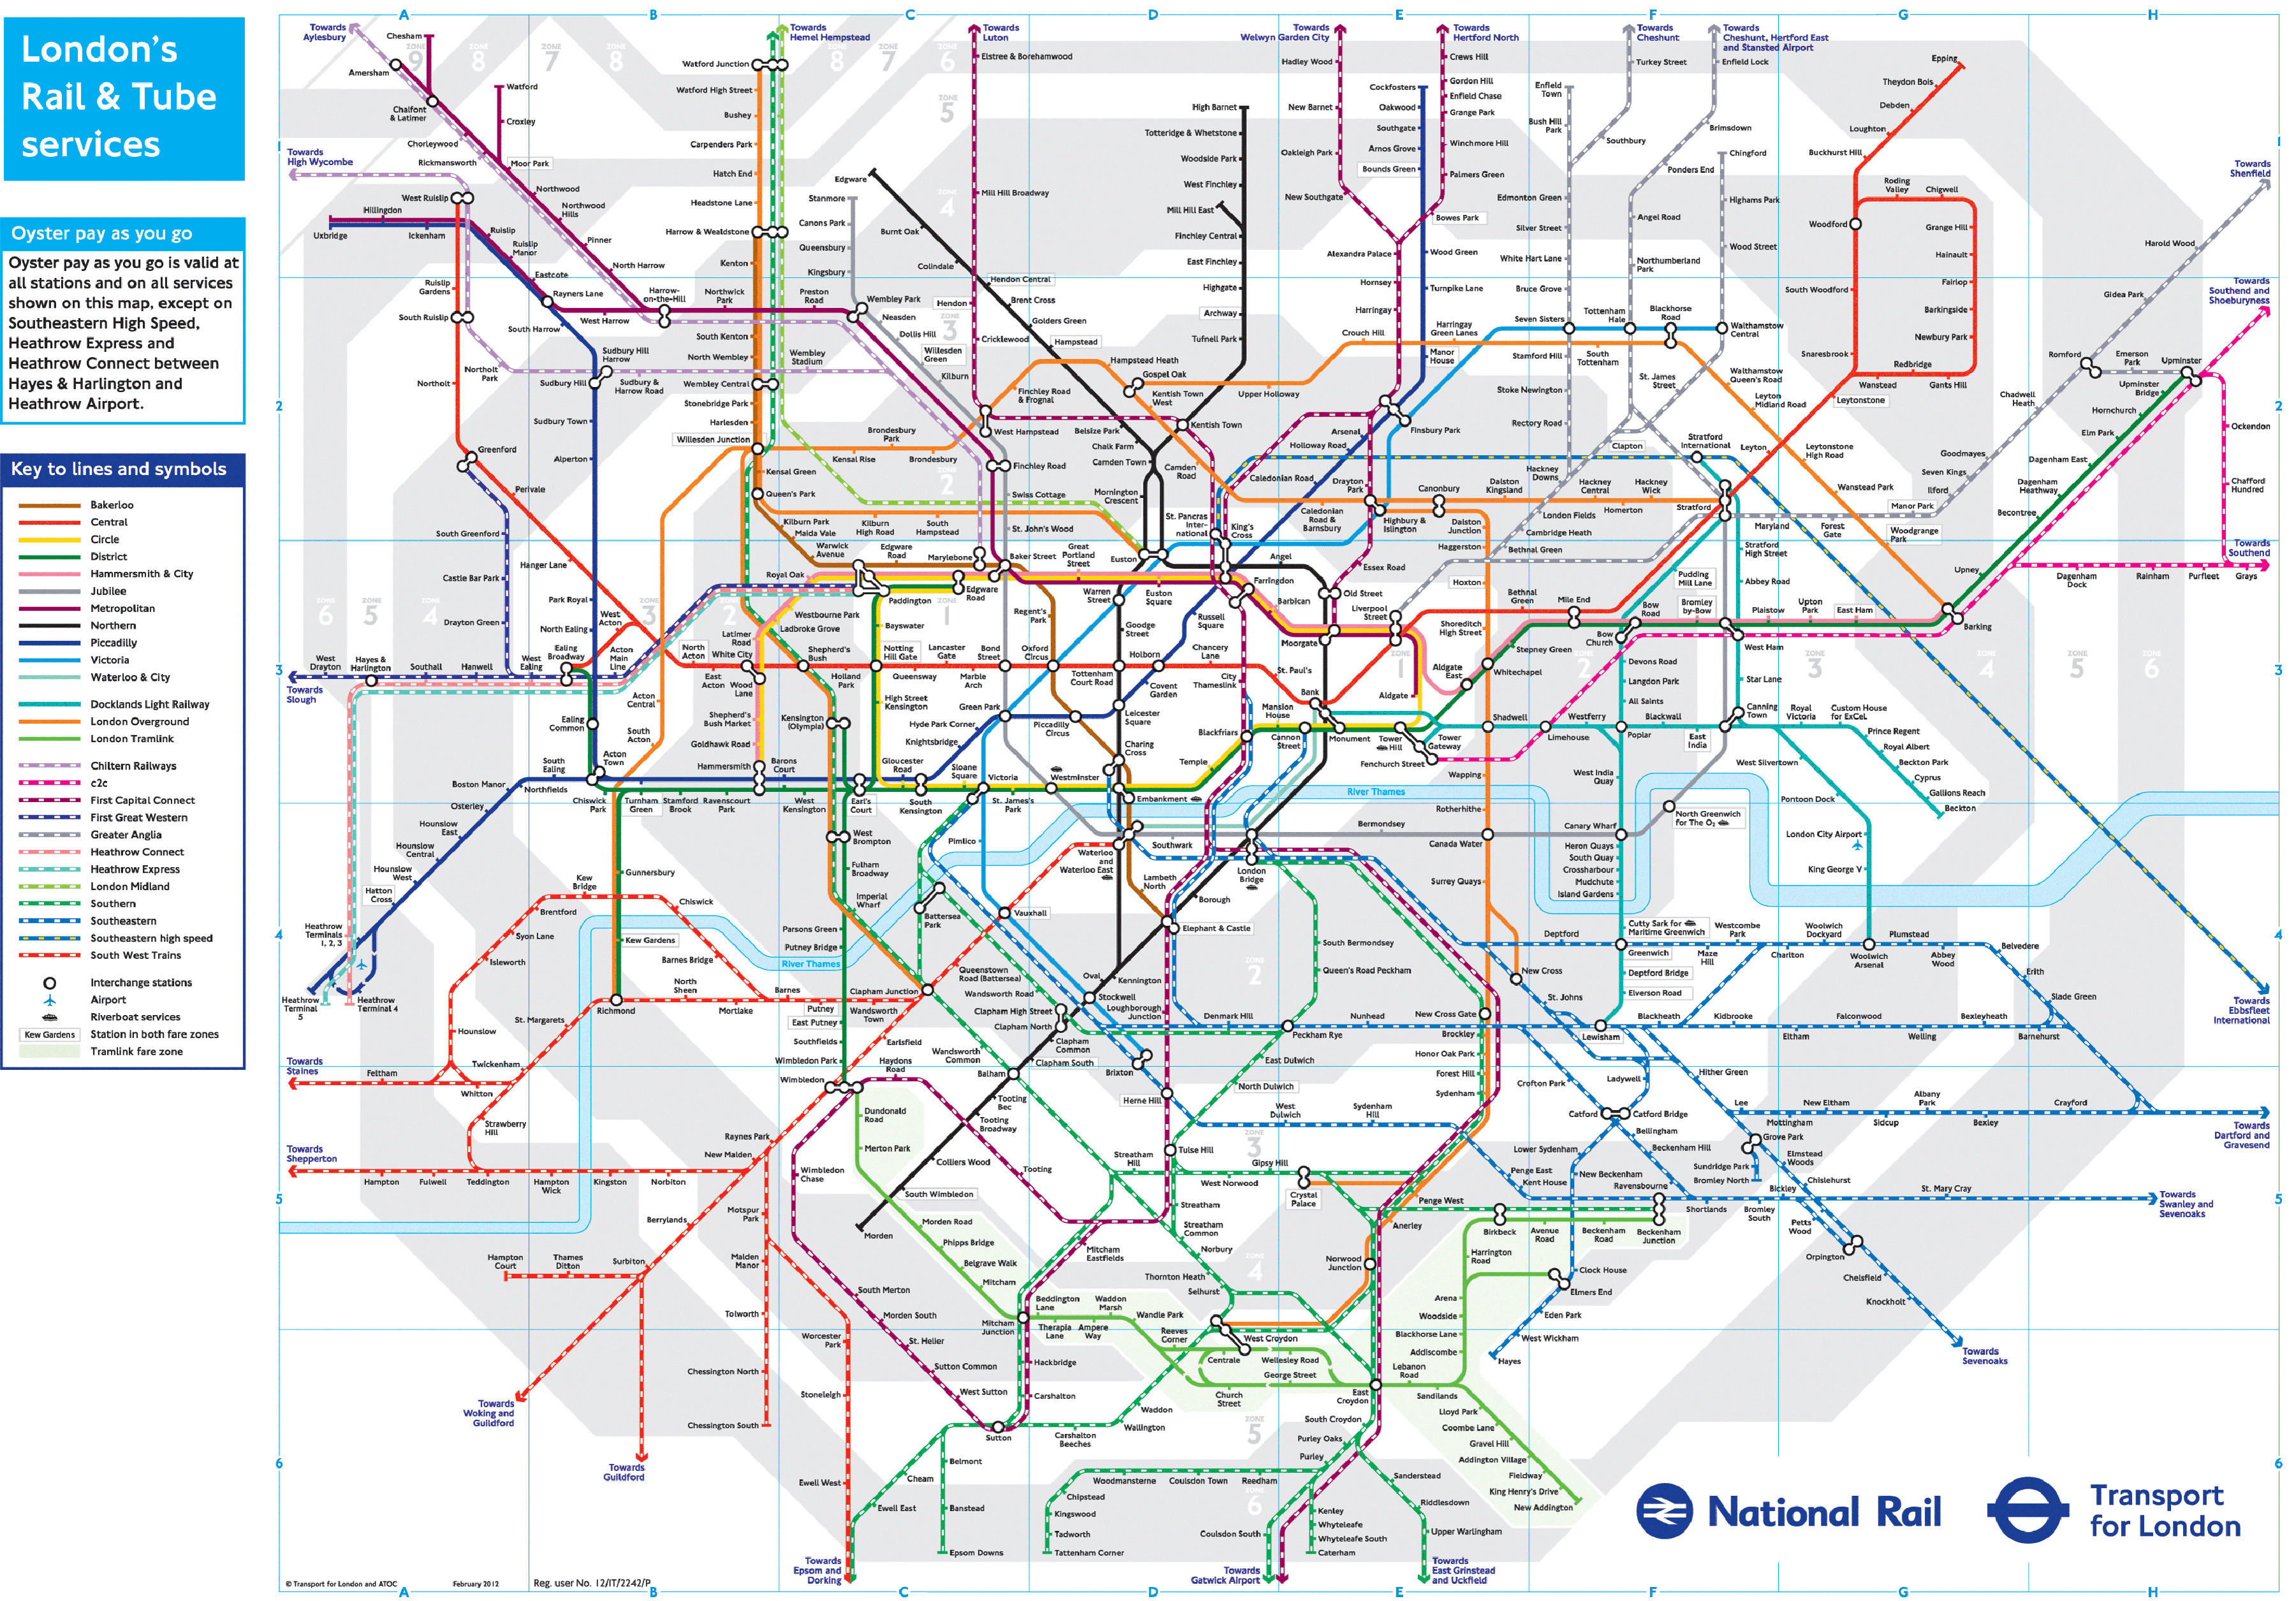 Tube Zones Map London Tube Maps and Zones 2018 | Chameleon Web Services ®